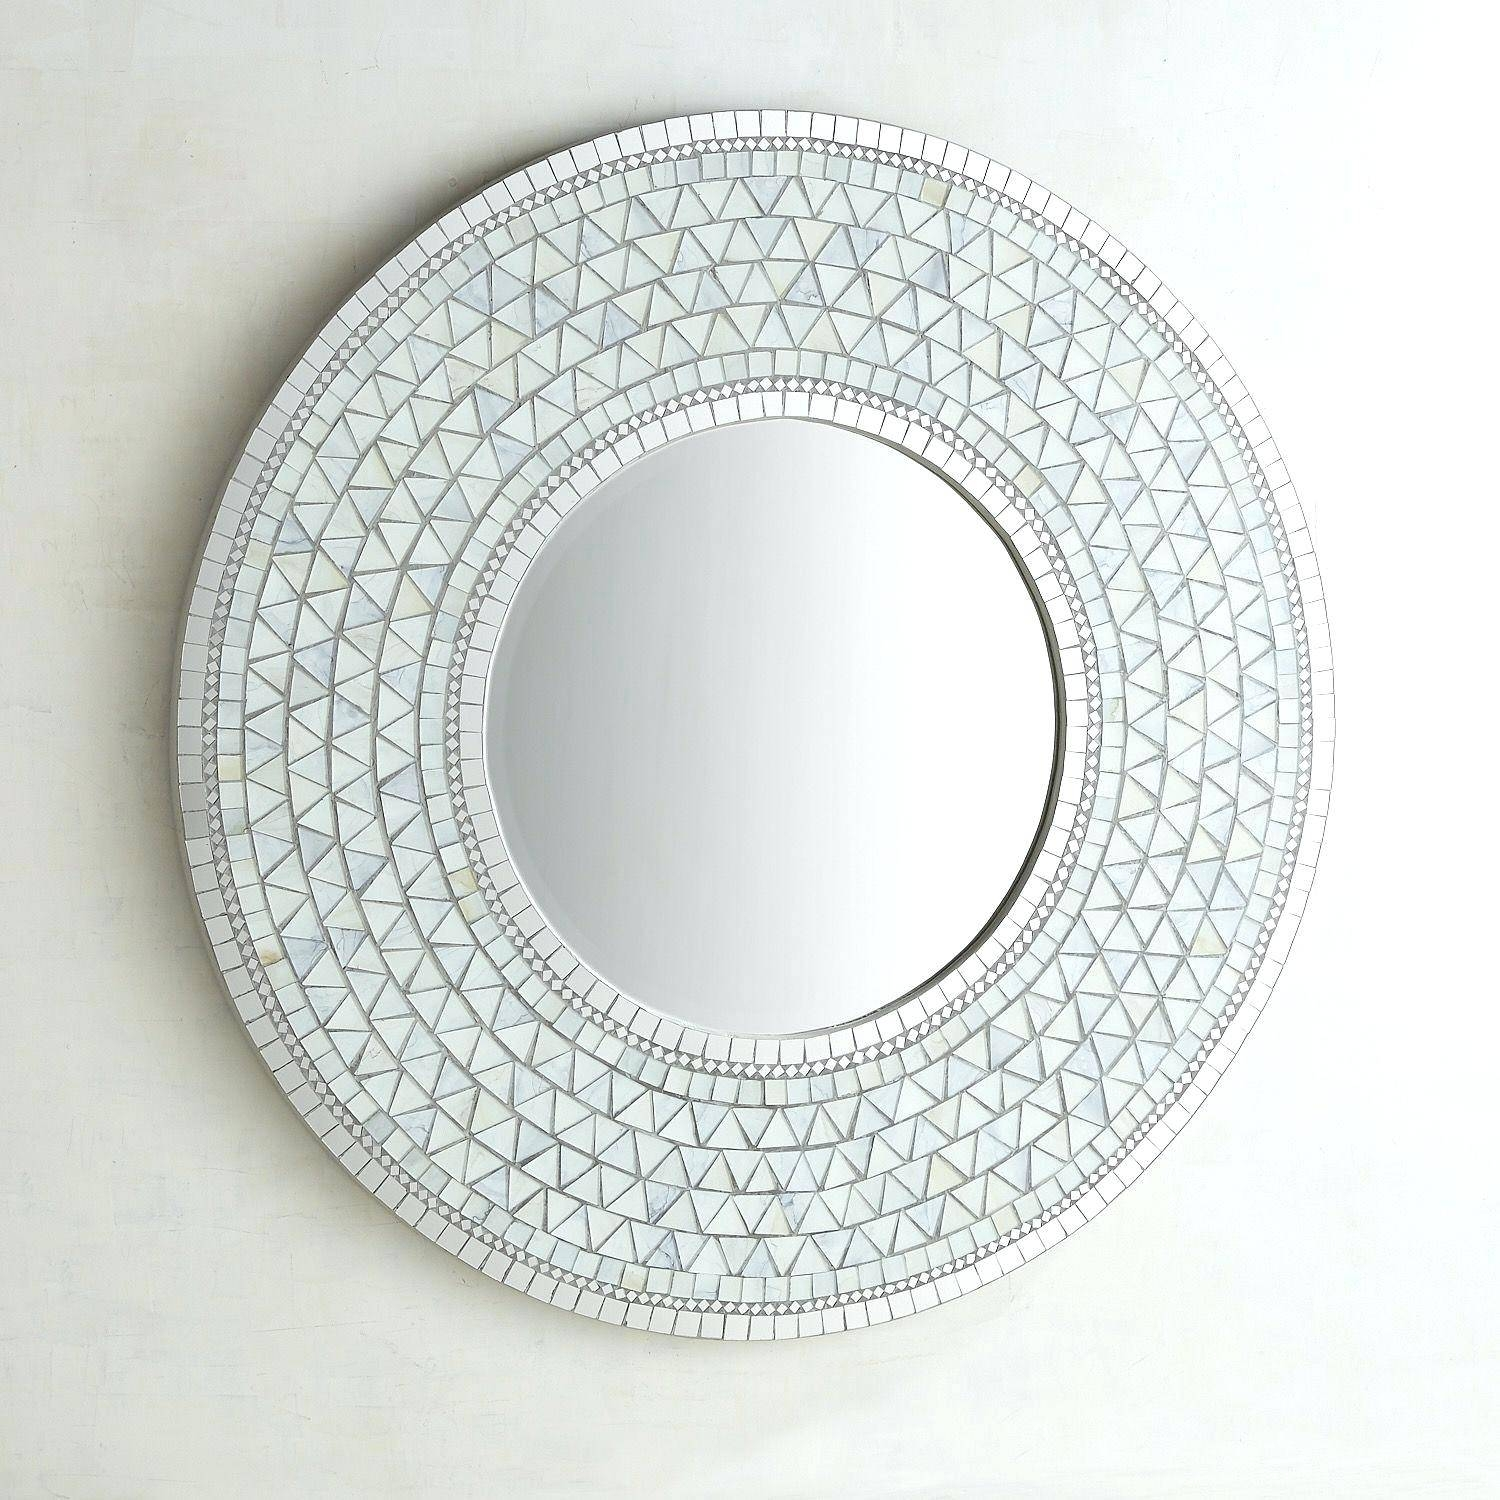 Eternal Gold Mosaic Round Wall Mirrormirror Envy Shine Mirrors Throughout Round Mosaic Mirrors (View 10 of 15)